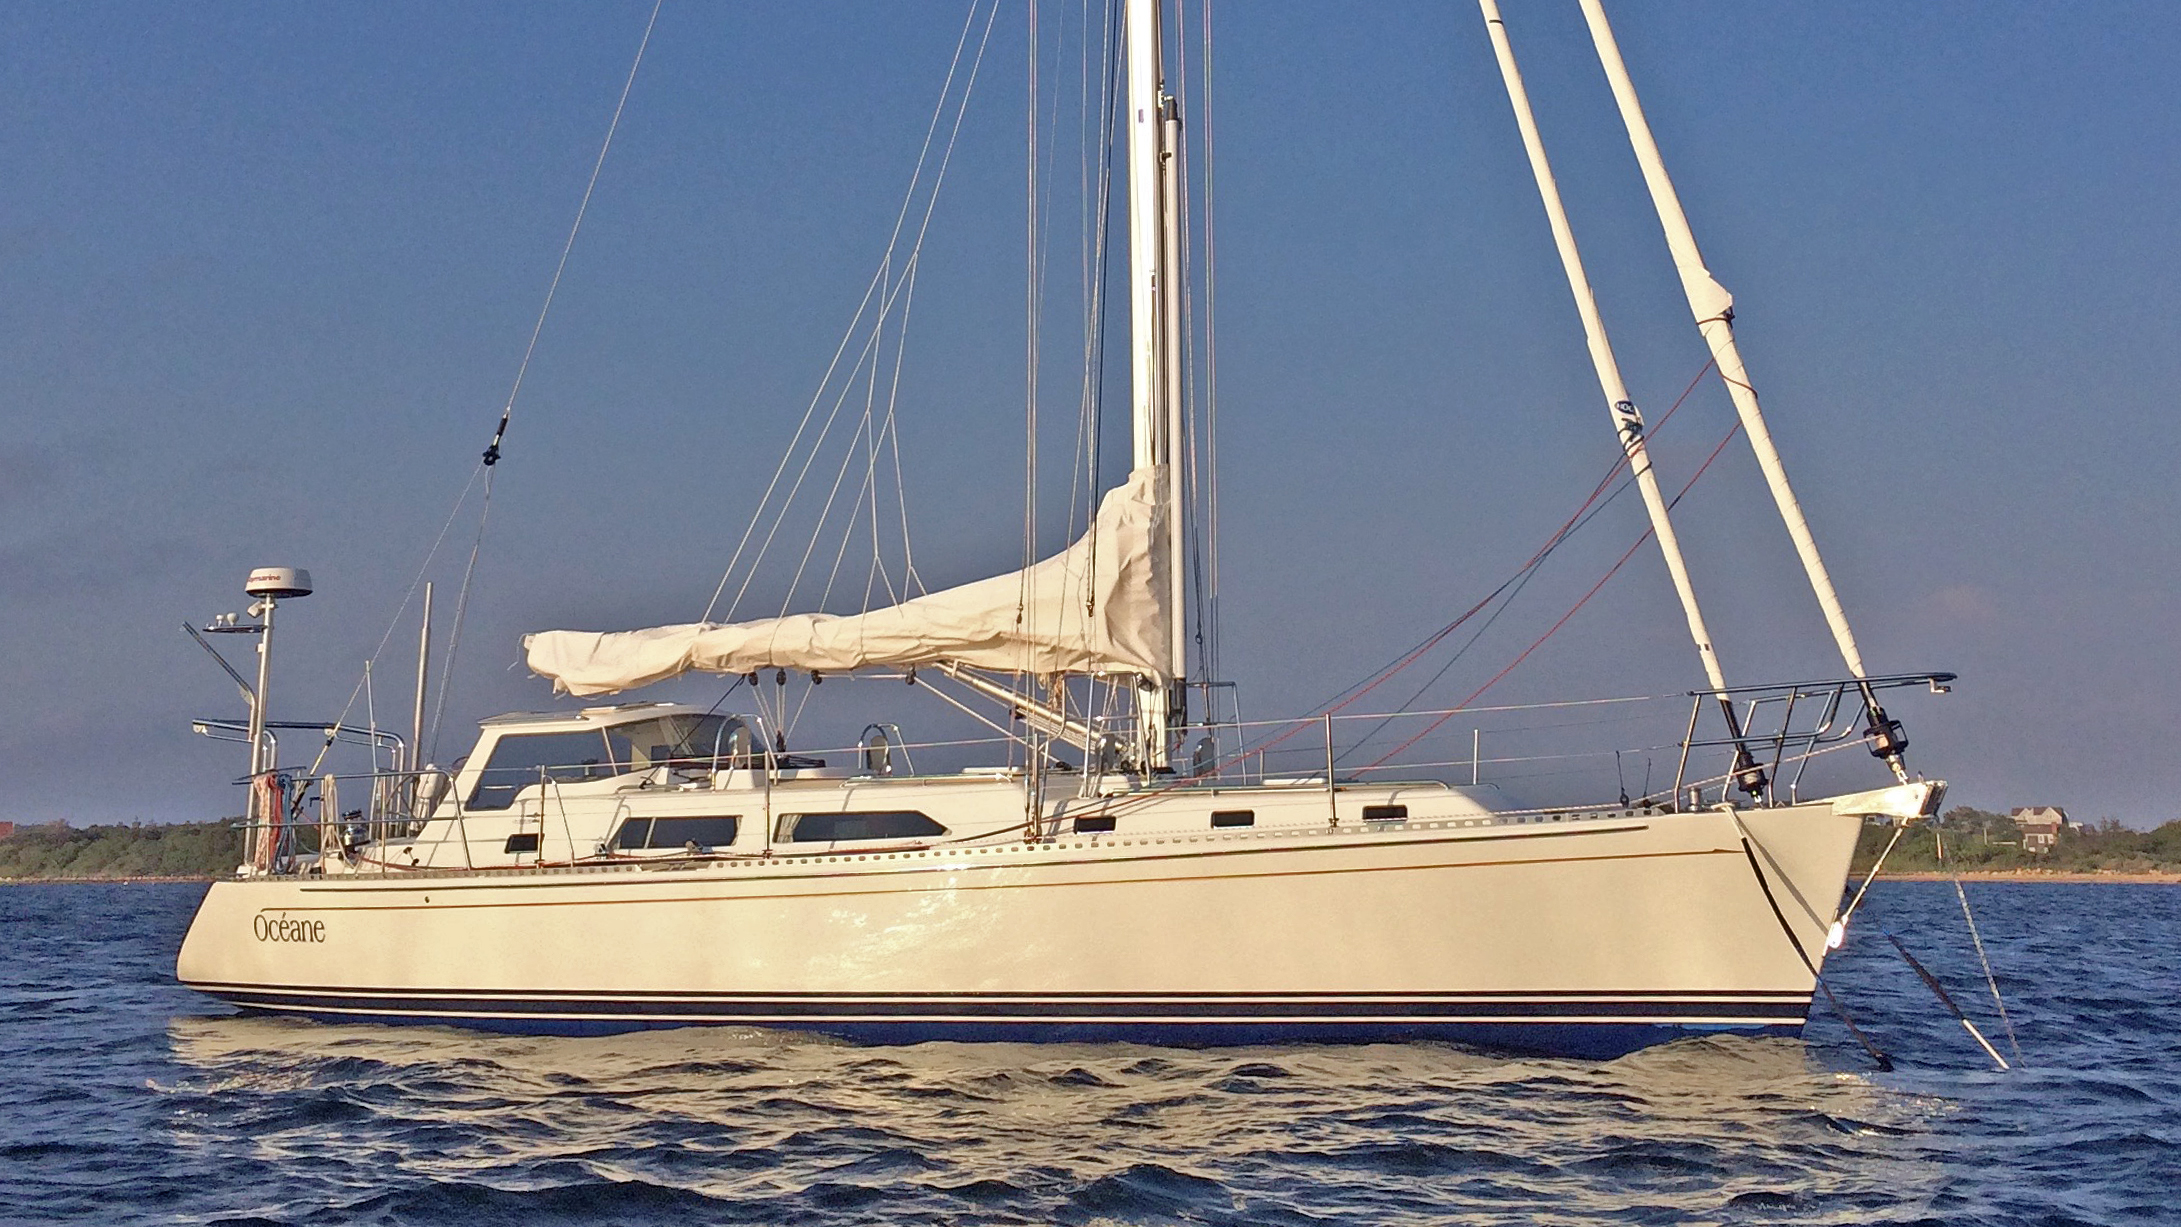 Luxury Yachts, Sailboats and Powerboats for Sale - New and Used